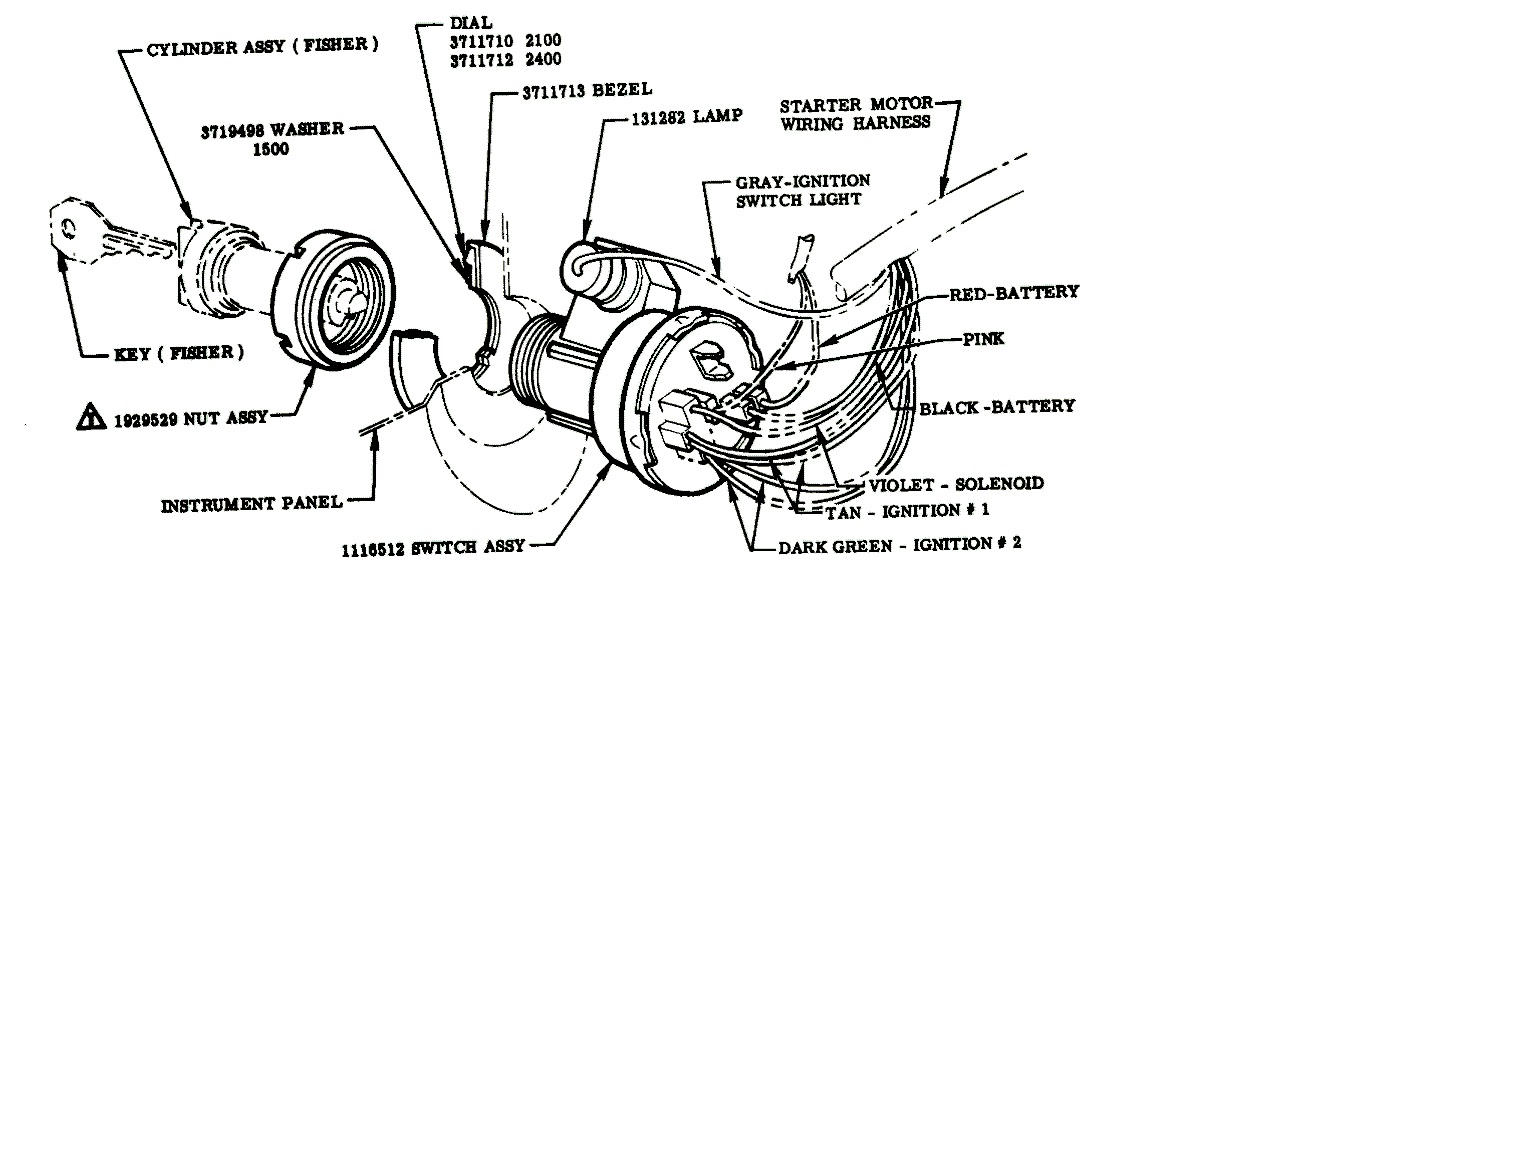 sbc hei wiring diagram gm hei ignition wiring \u2022 wiring diagrams hei wiring harness at gsmx.co